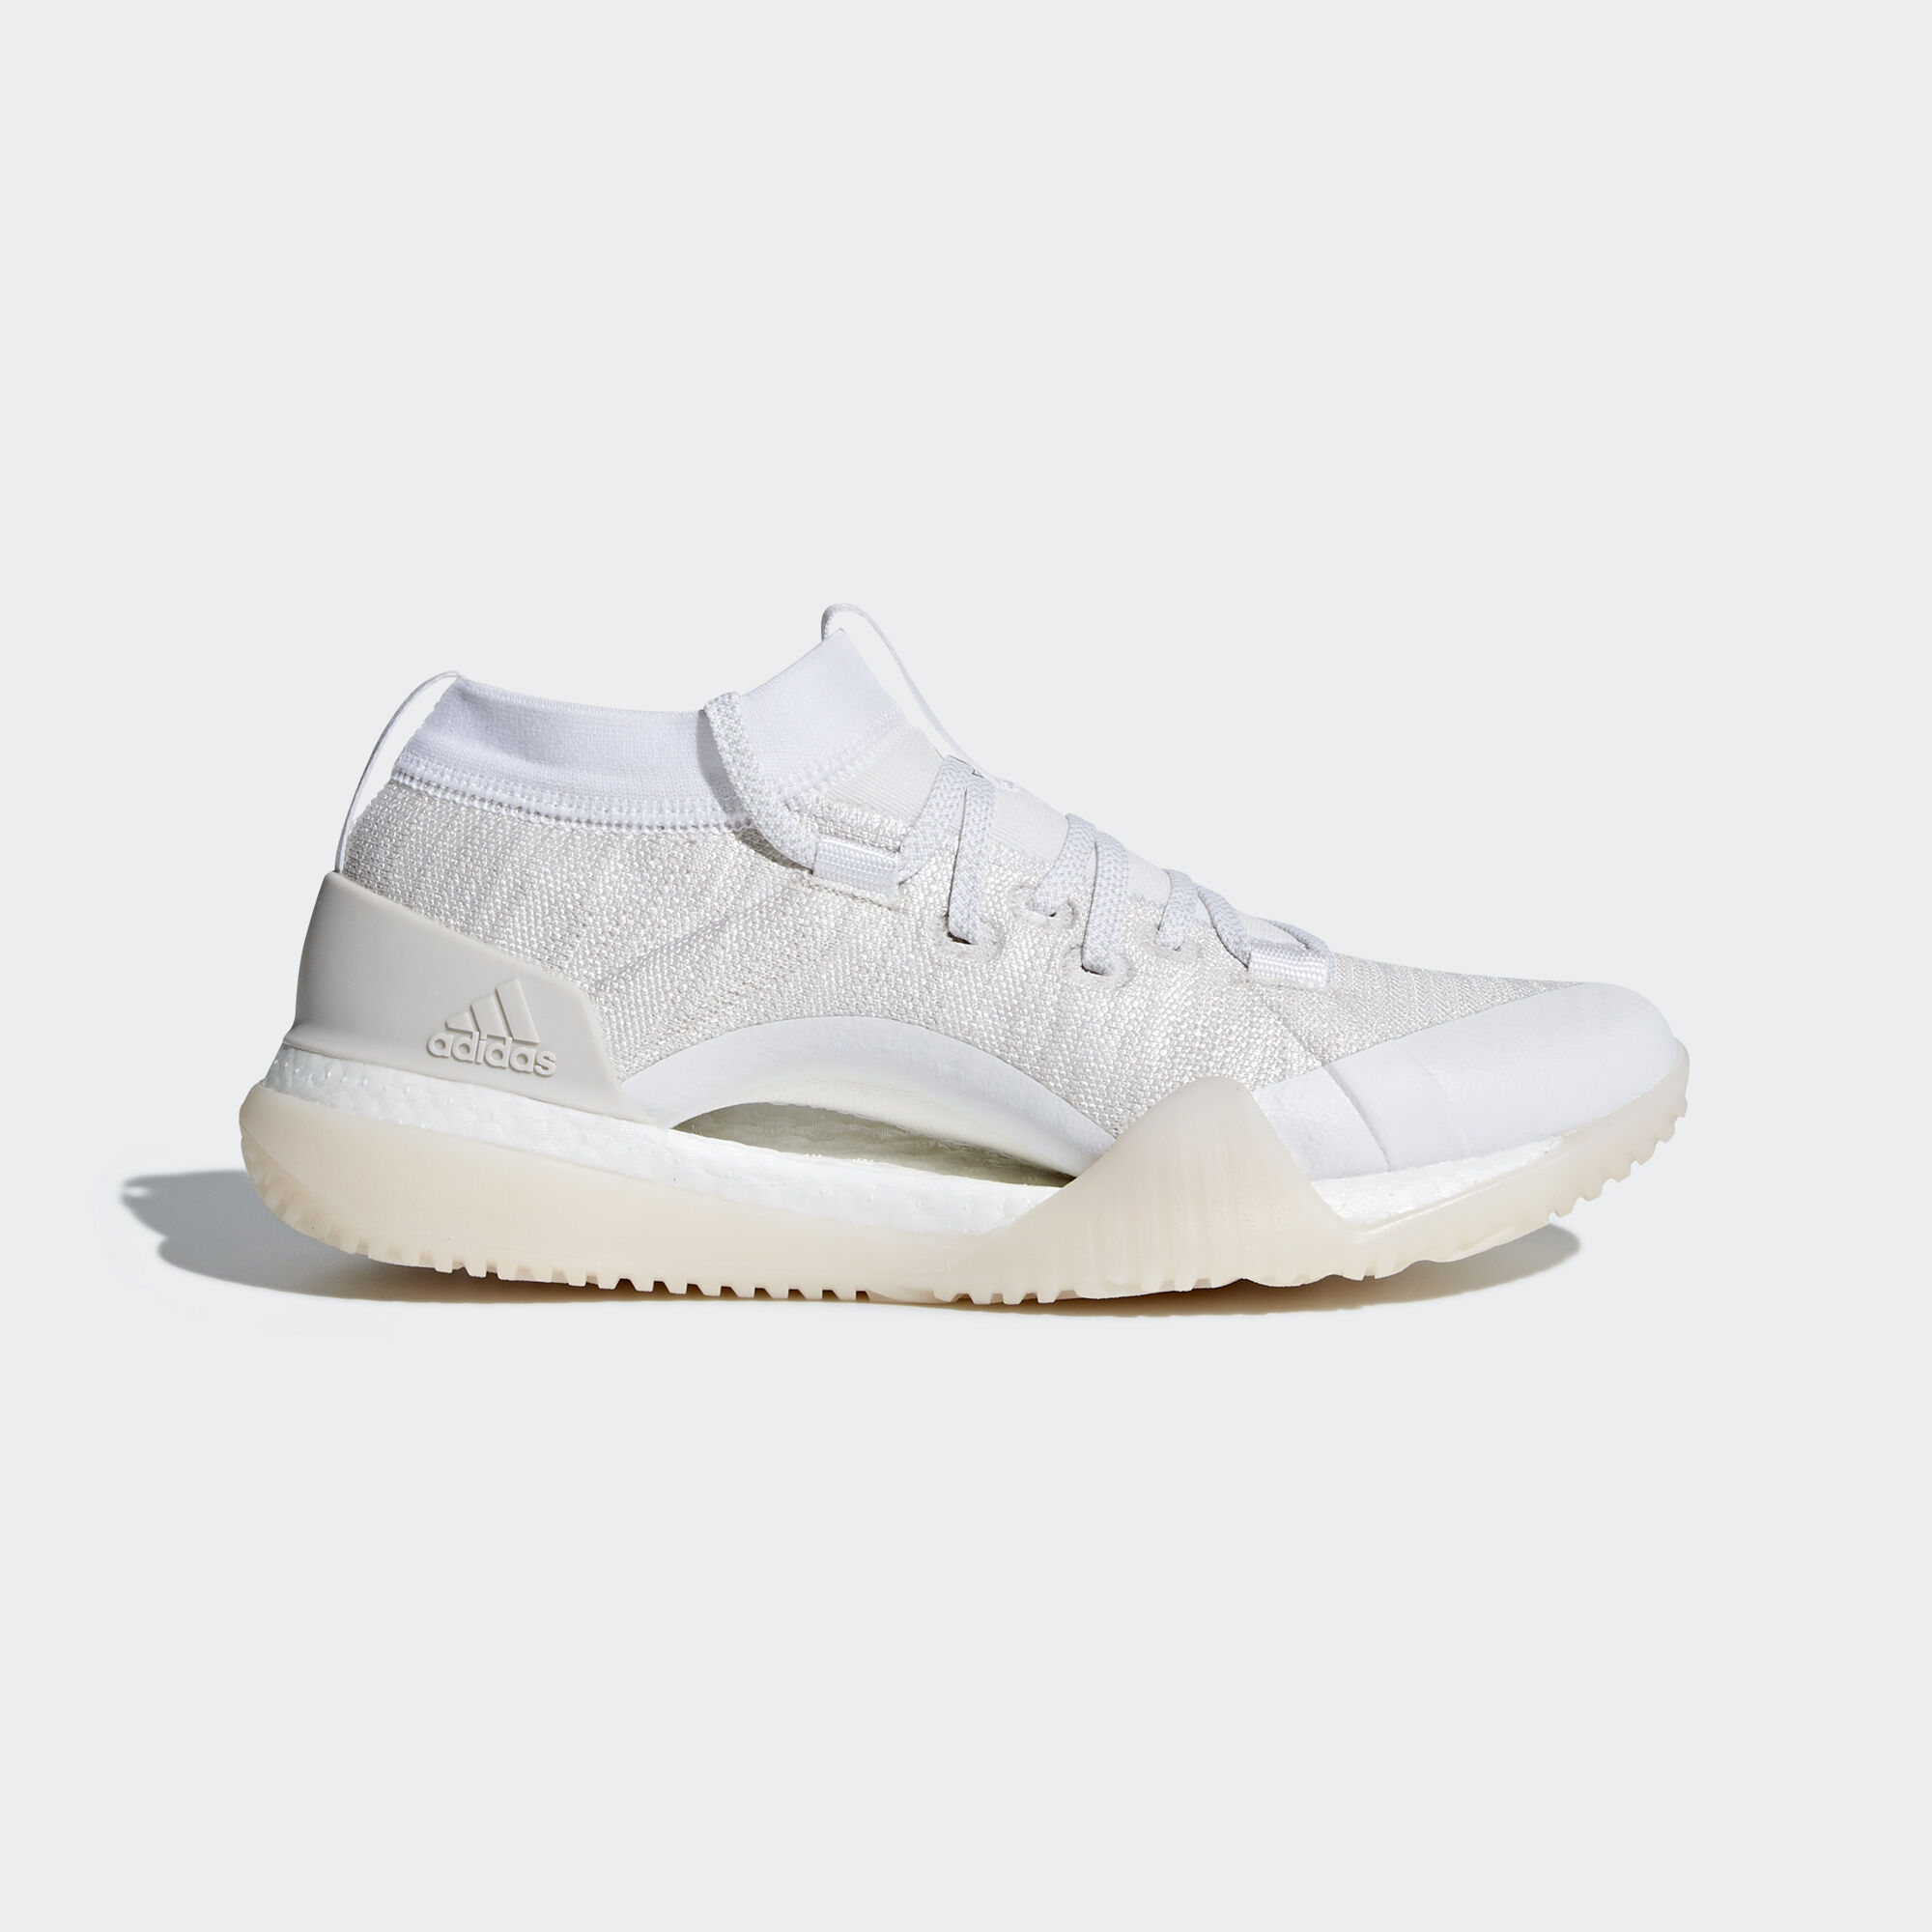 PureBOOST X In All White - Ftwr white adidas Sale Online Shopping Y2xv4f93n